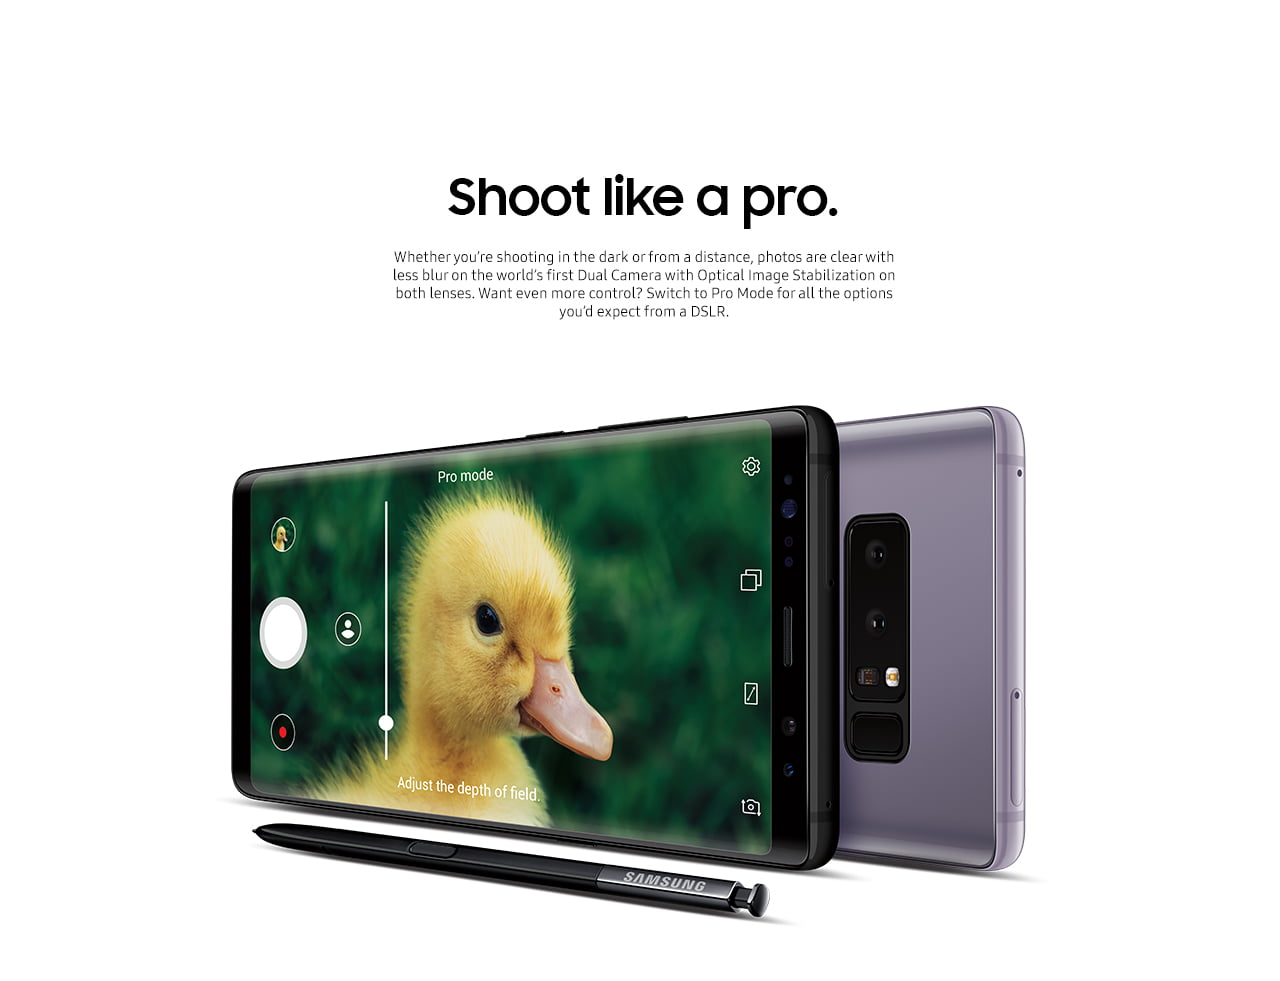 Shoot like a pro. Whether you are shoting in the dark or from a distance, photos are clear with less blur on the world's first dual camera with optical image stabilization on both lenses. Want even more control? switch toPro Mode for all the options you would expect from a DSLR.